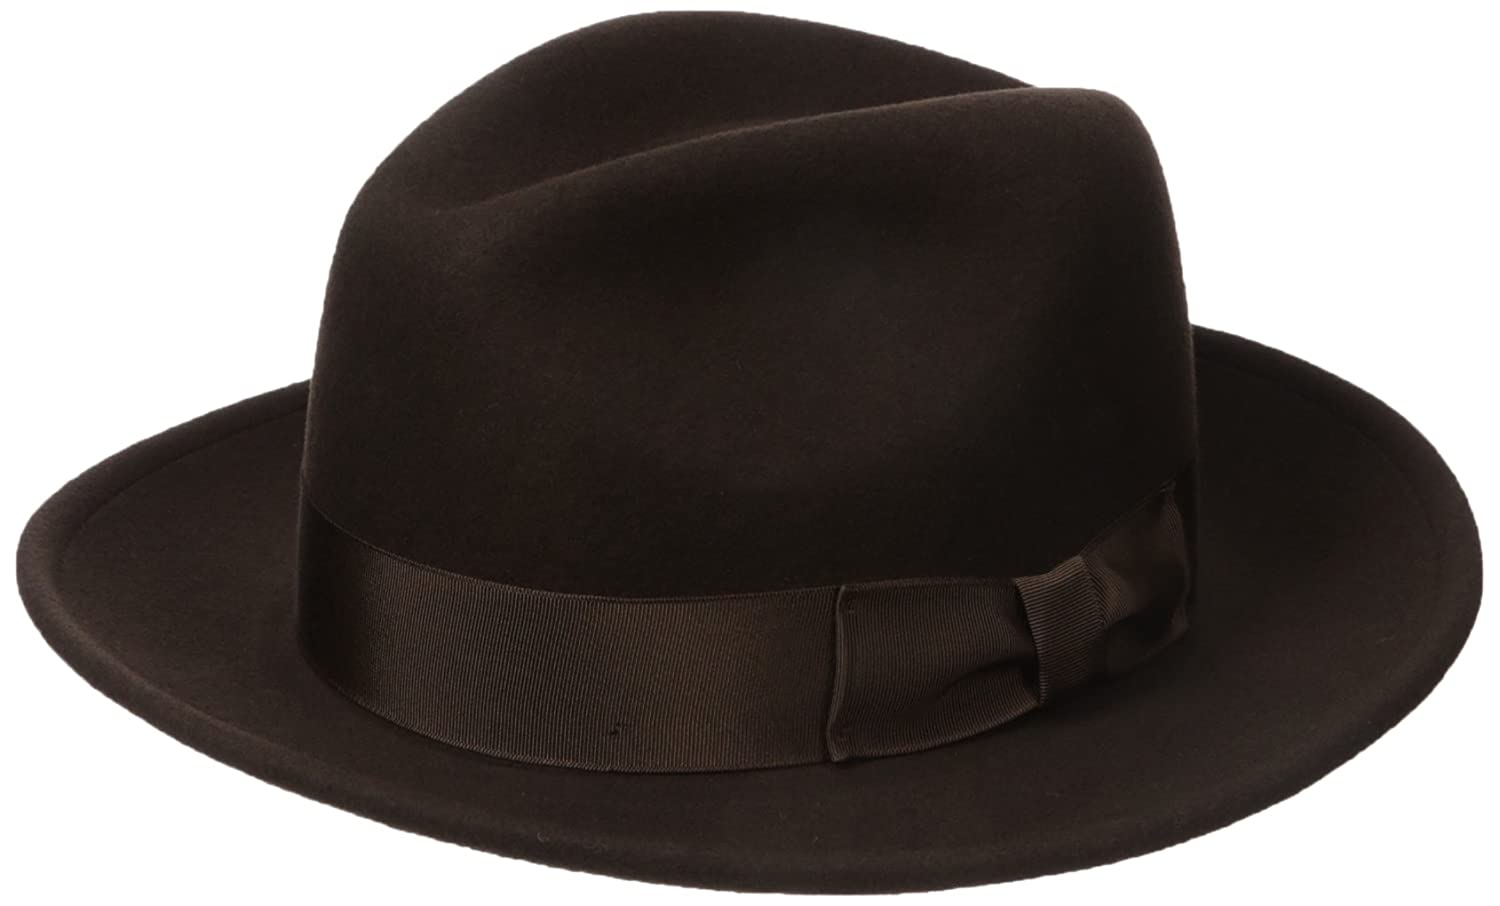 Country Gentleman Men's Frederick Wide Brim Fedora Hat CG182